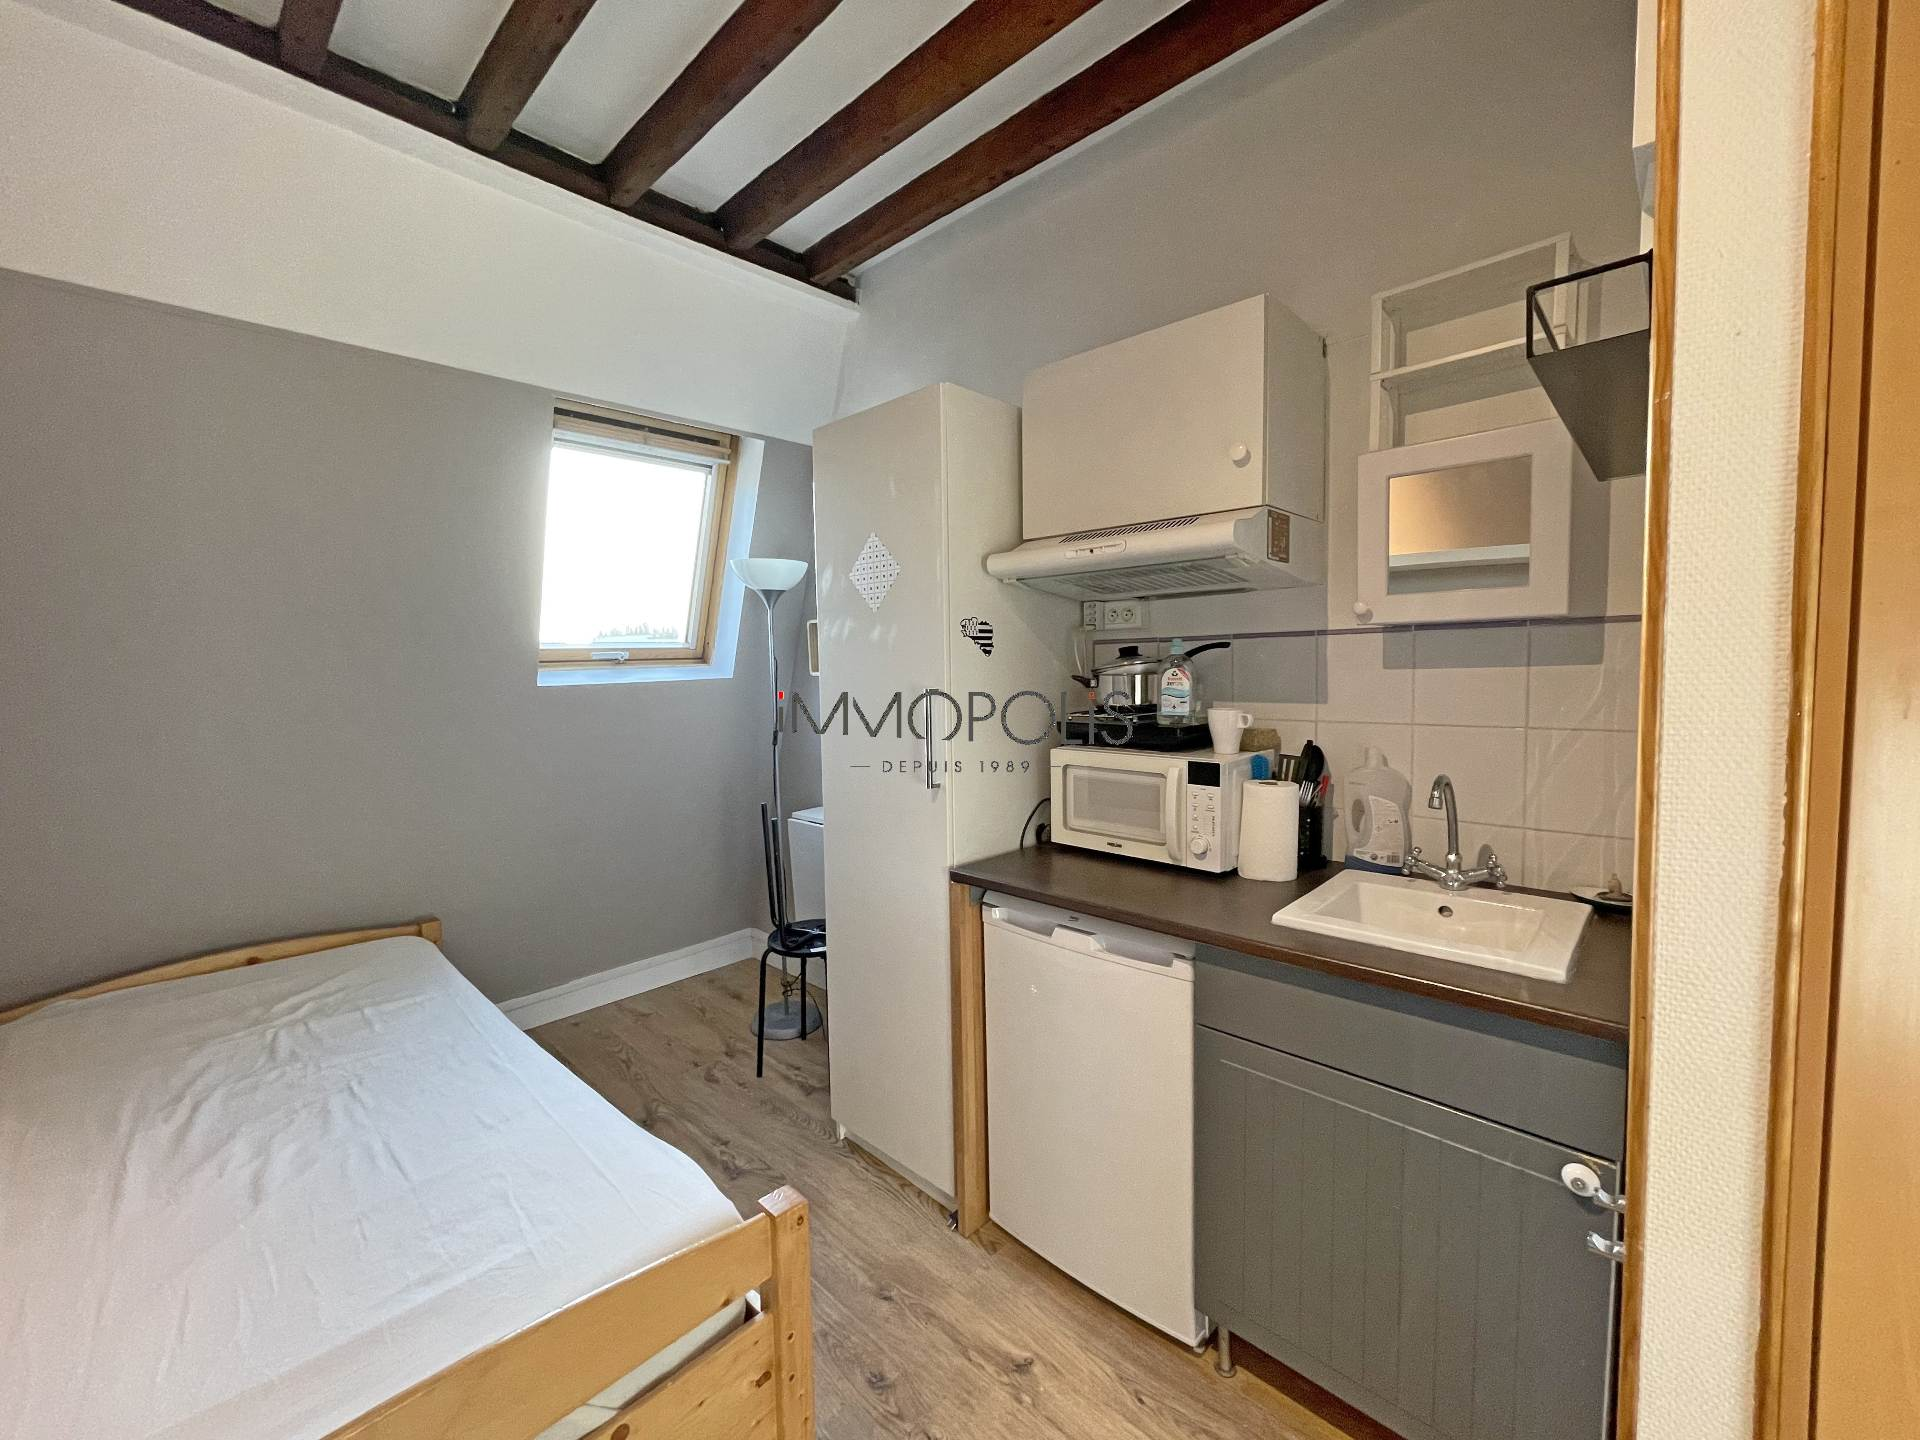 Europe district (rue Clapeyron in the 8th arrondissement), Legally laudable studio of 9.88 m² Law Carrez located in a beautiful well maintained building 5